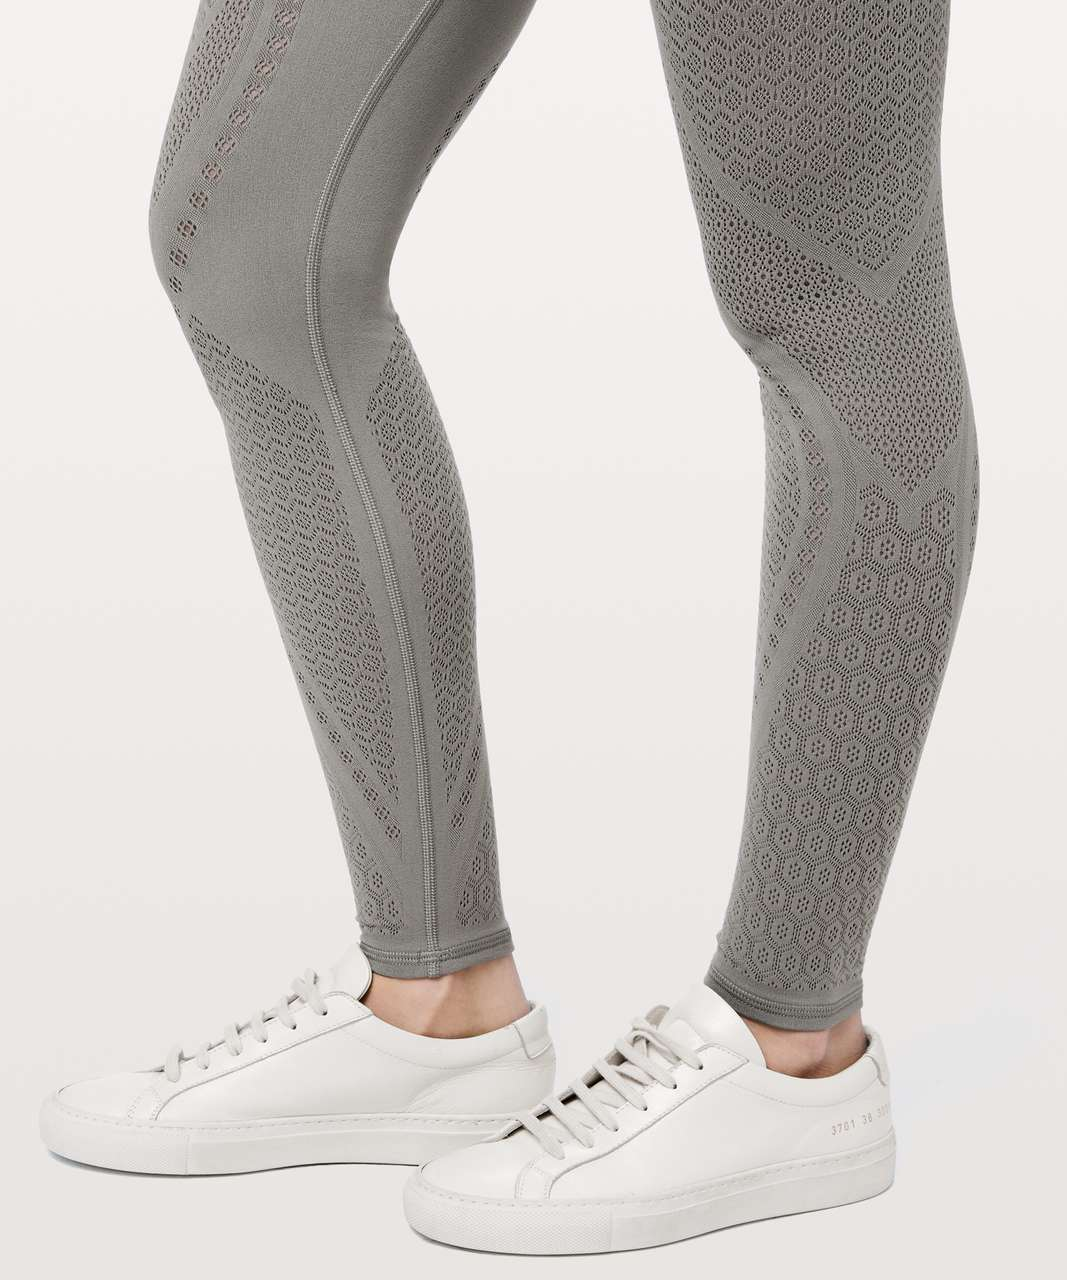 Lululemon Reveal Tight *Mindful Motion - Carbon Dust